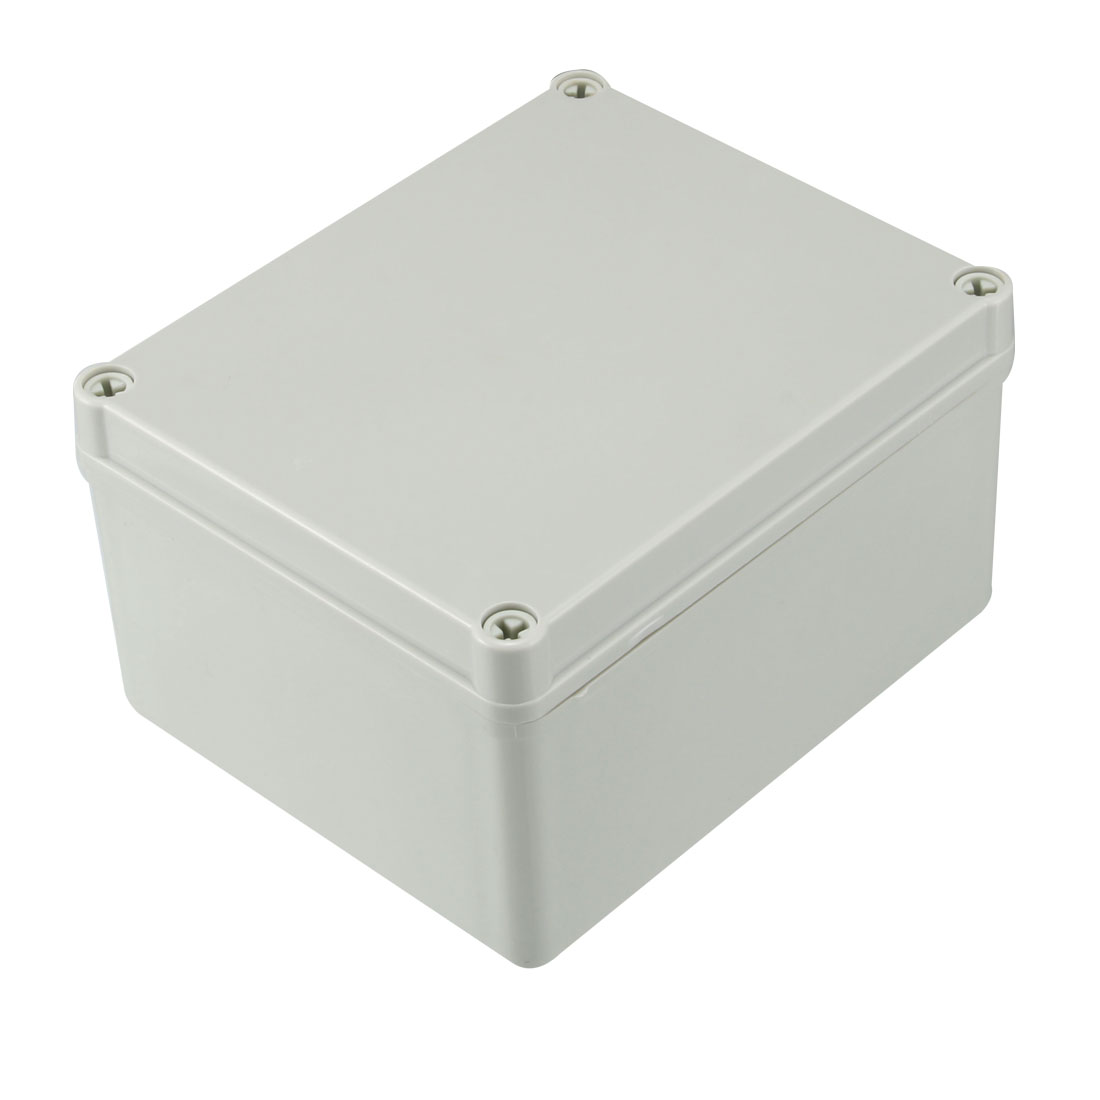 170 x 140 x 95mm Electronic Plastic DIY Junction Box Enclosure Case Grey